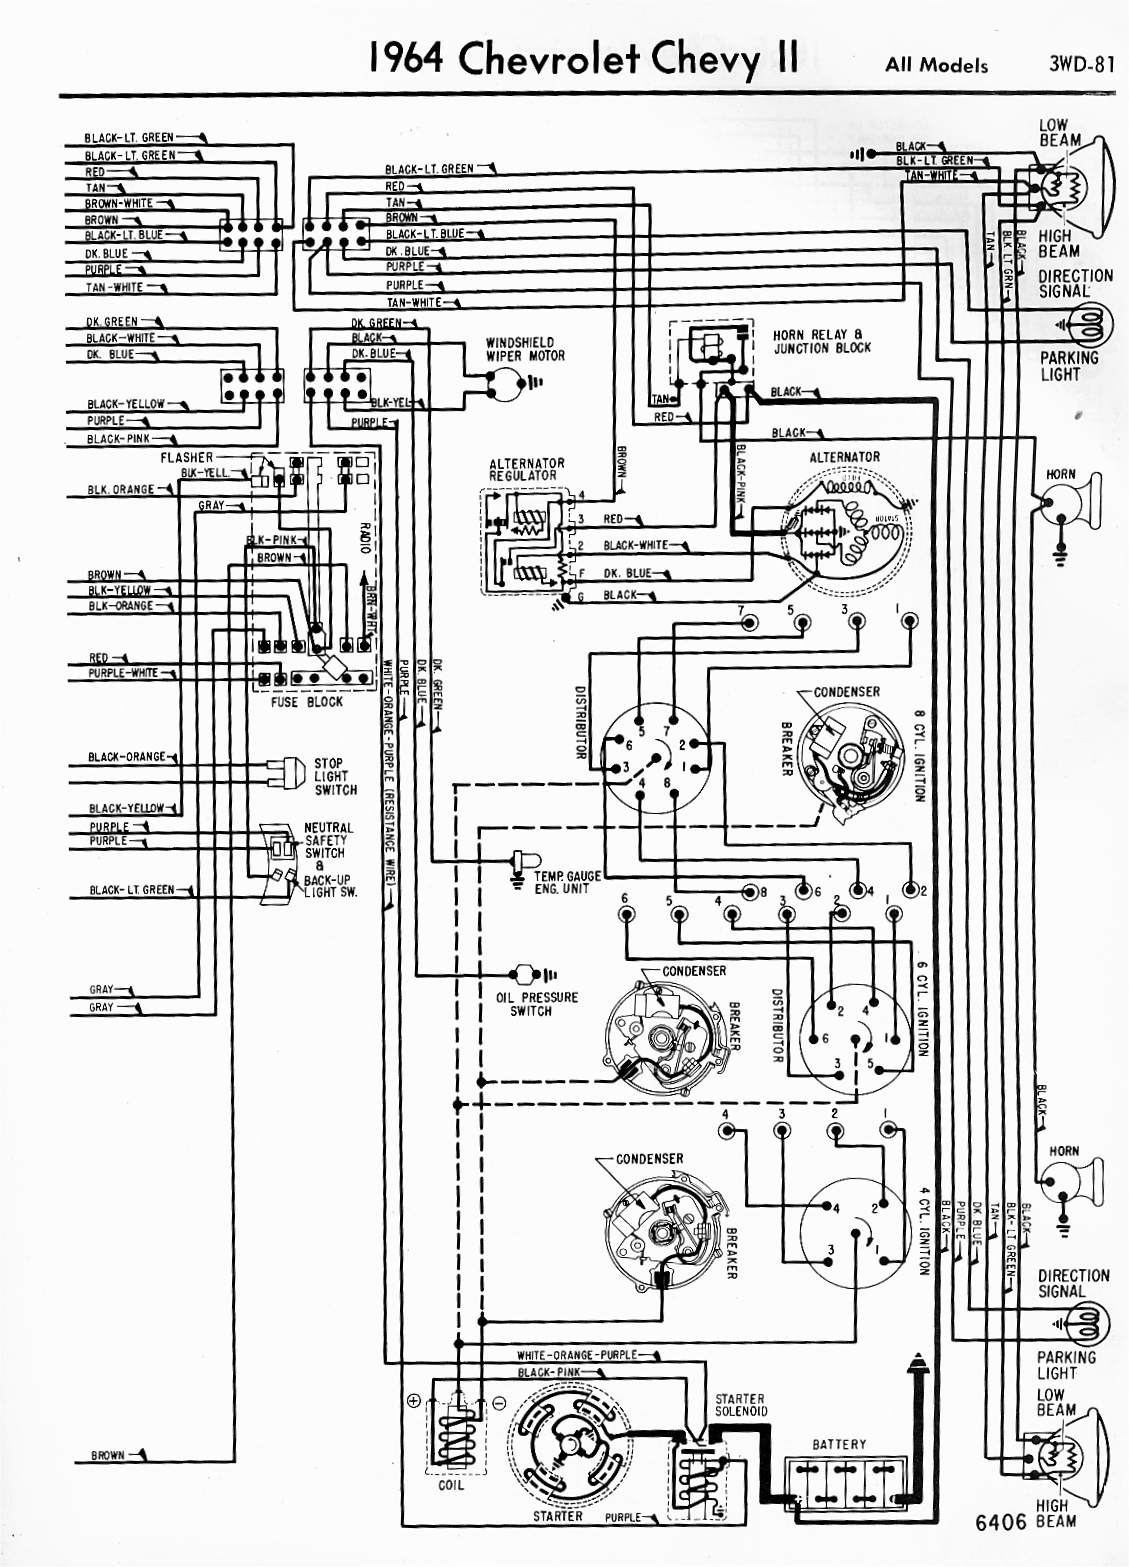 chevy wiring harness diagram dana 44 ifs parts painless 1964 pickup free download